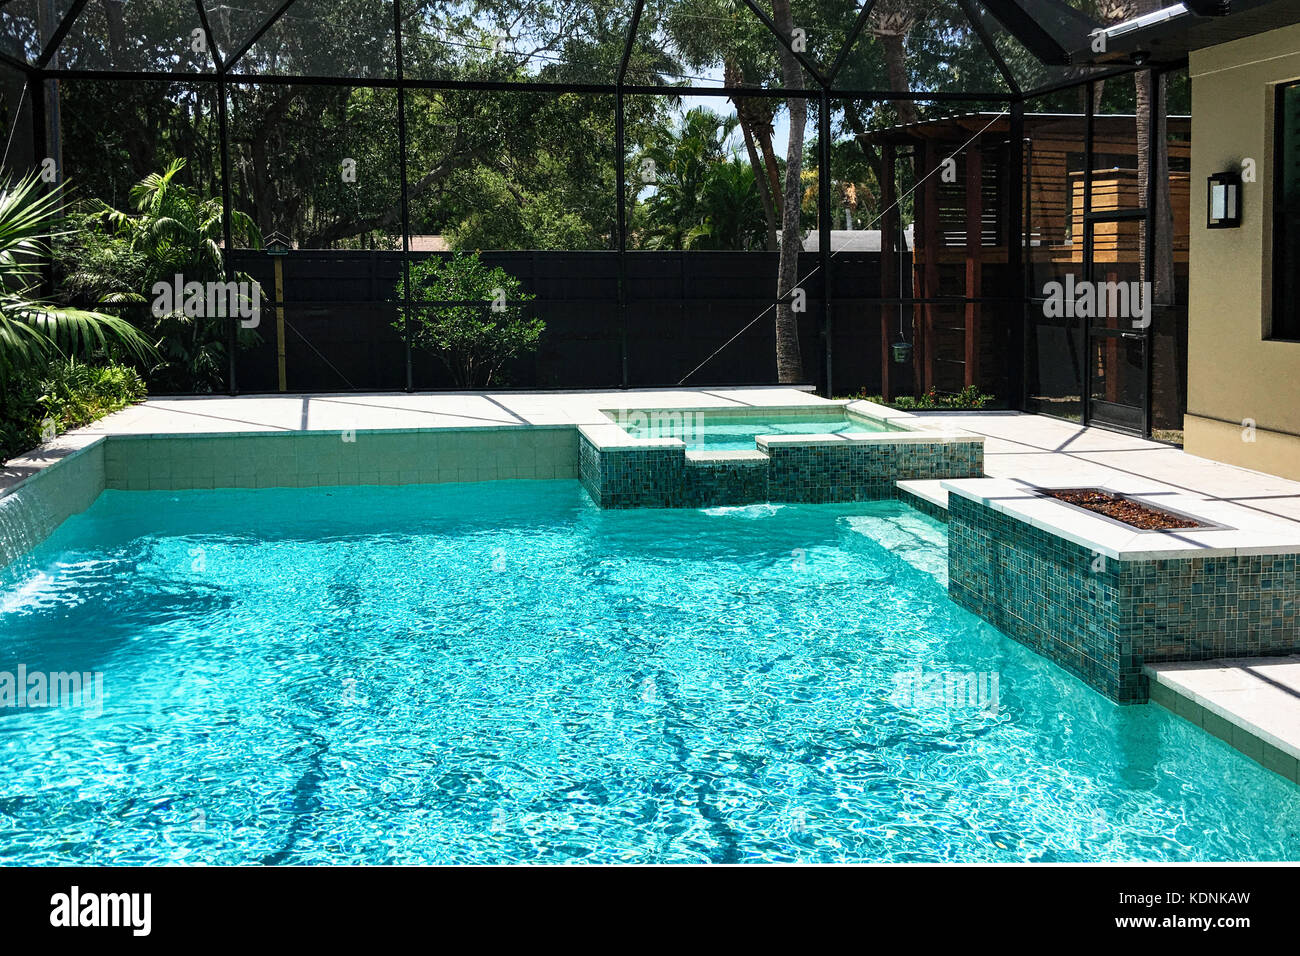 Jacuzzi In The Pool Swimming Pool With Jacuzzi And Waterfall At A Luxury Home In Stock